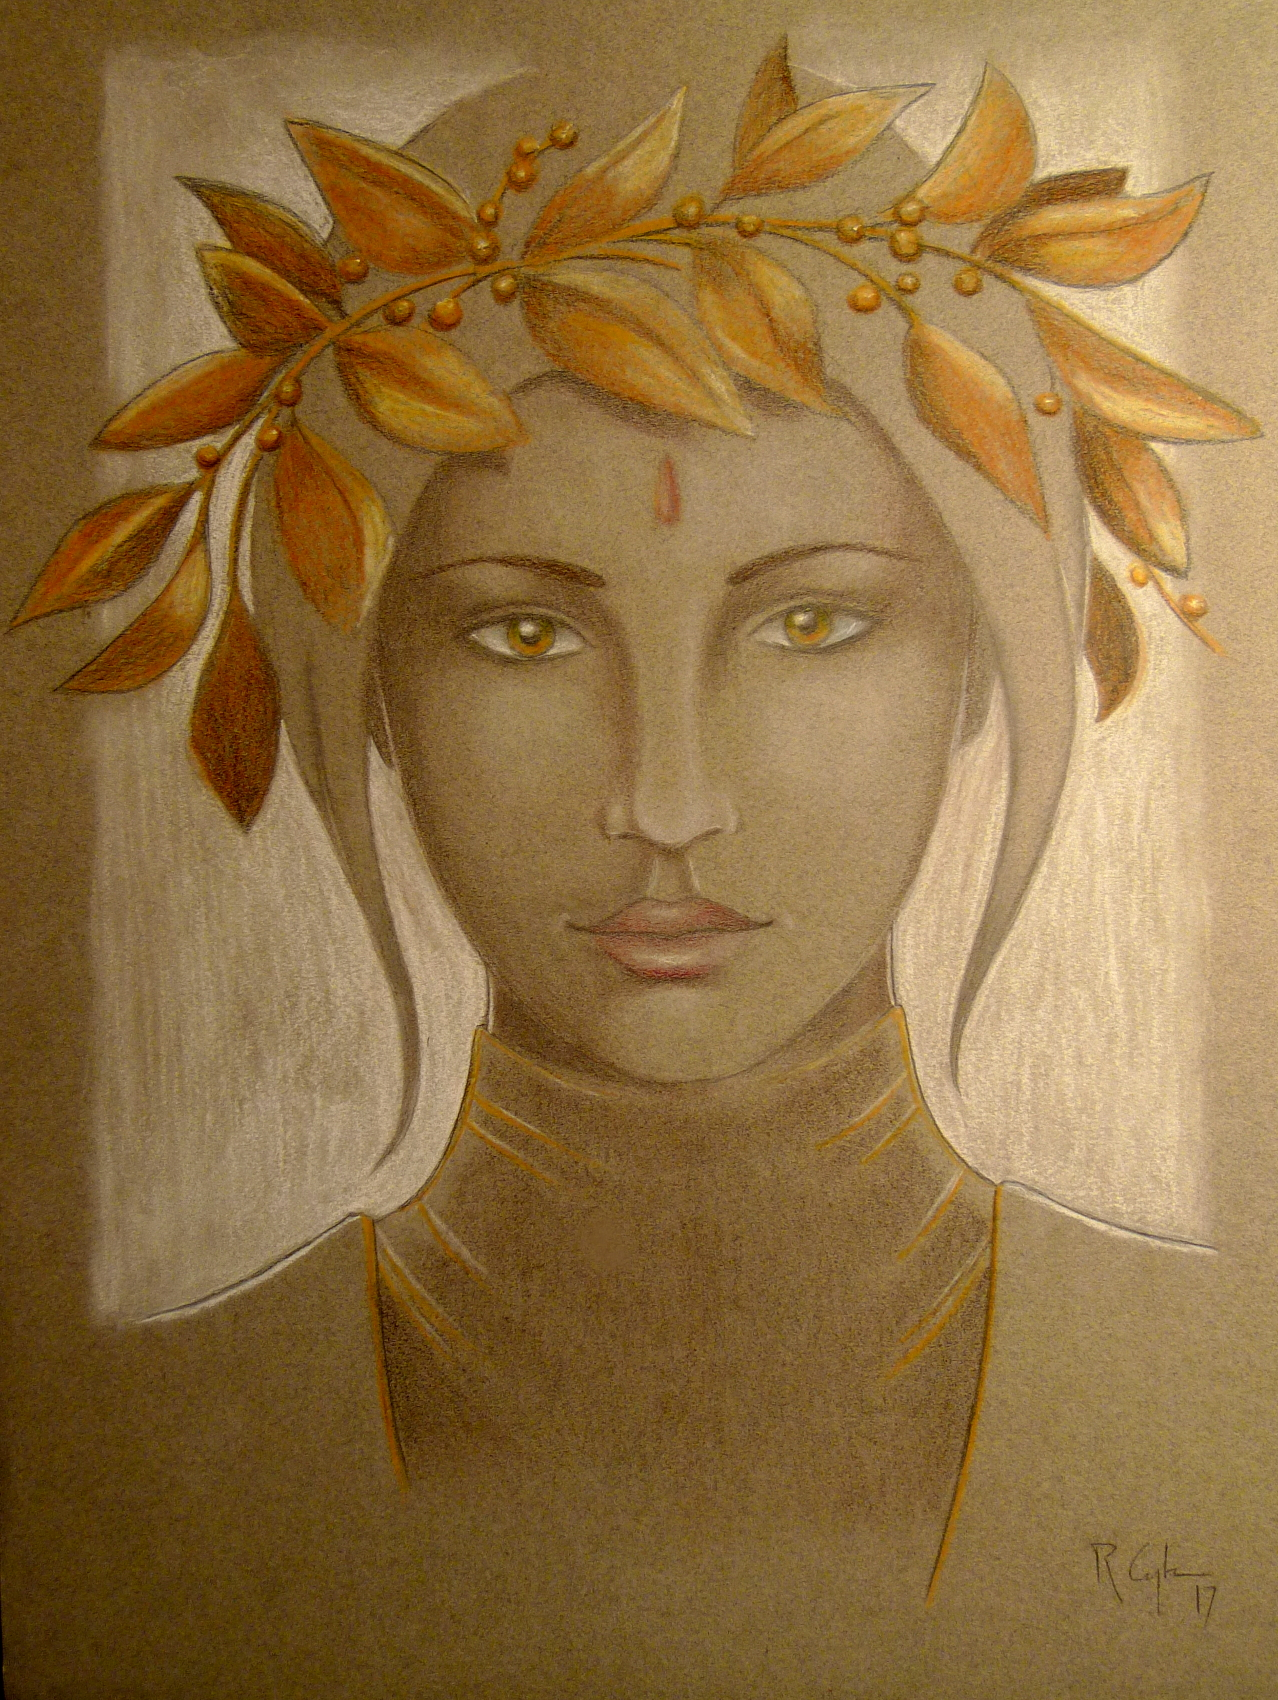 """"""" The tenth muse """", black pencil, color pencil and pastel on paper"""